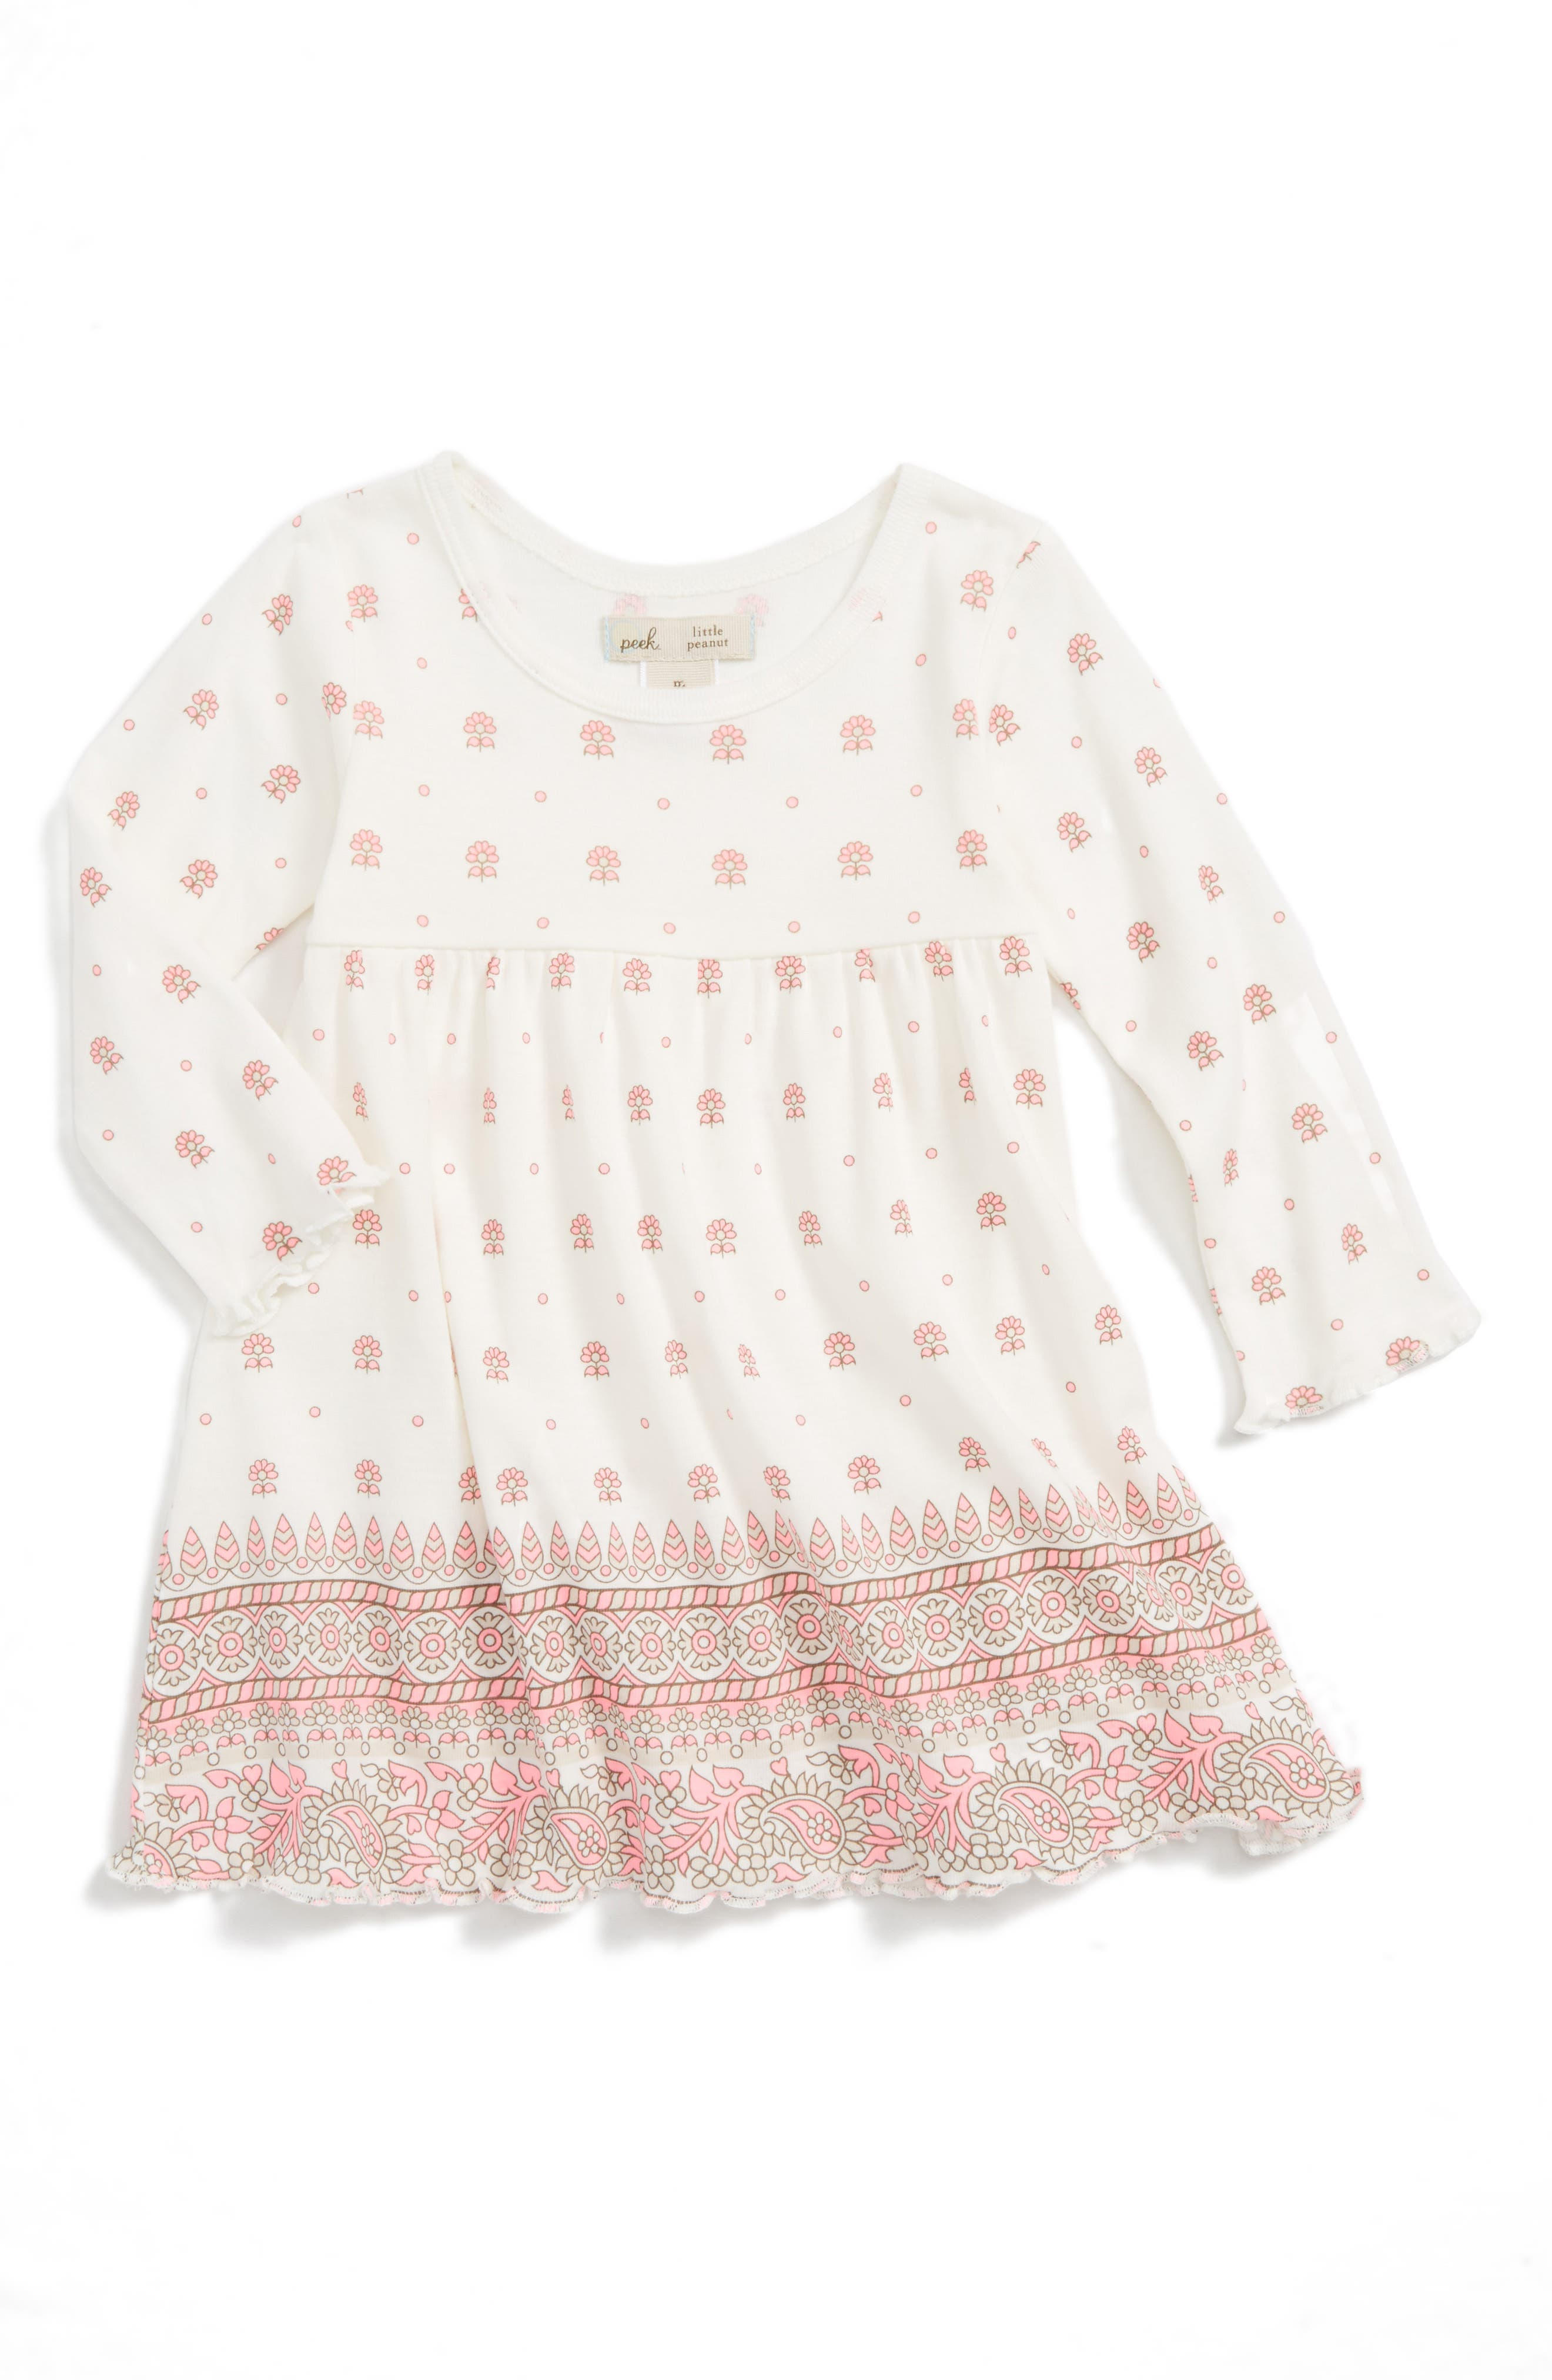 Alternate Image 1 Selected - Peek Border Print Dress (Baby)